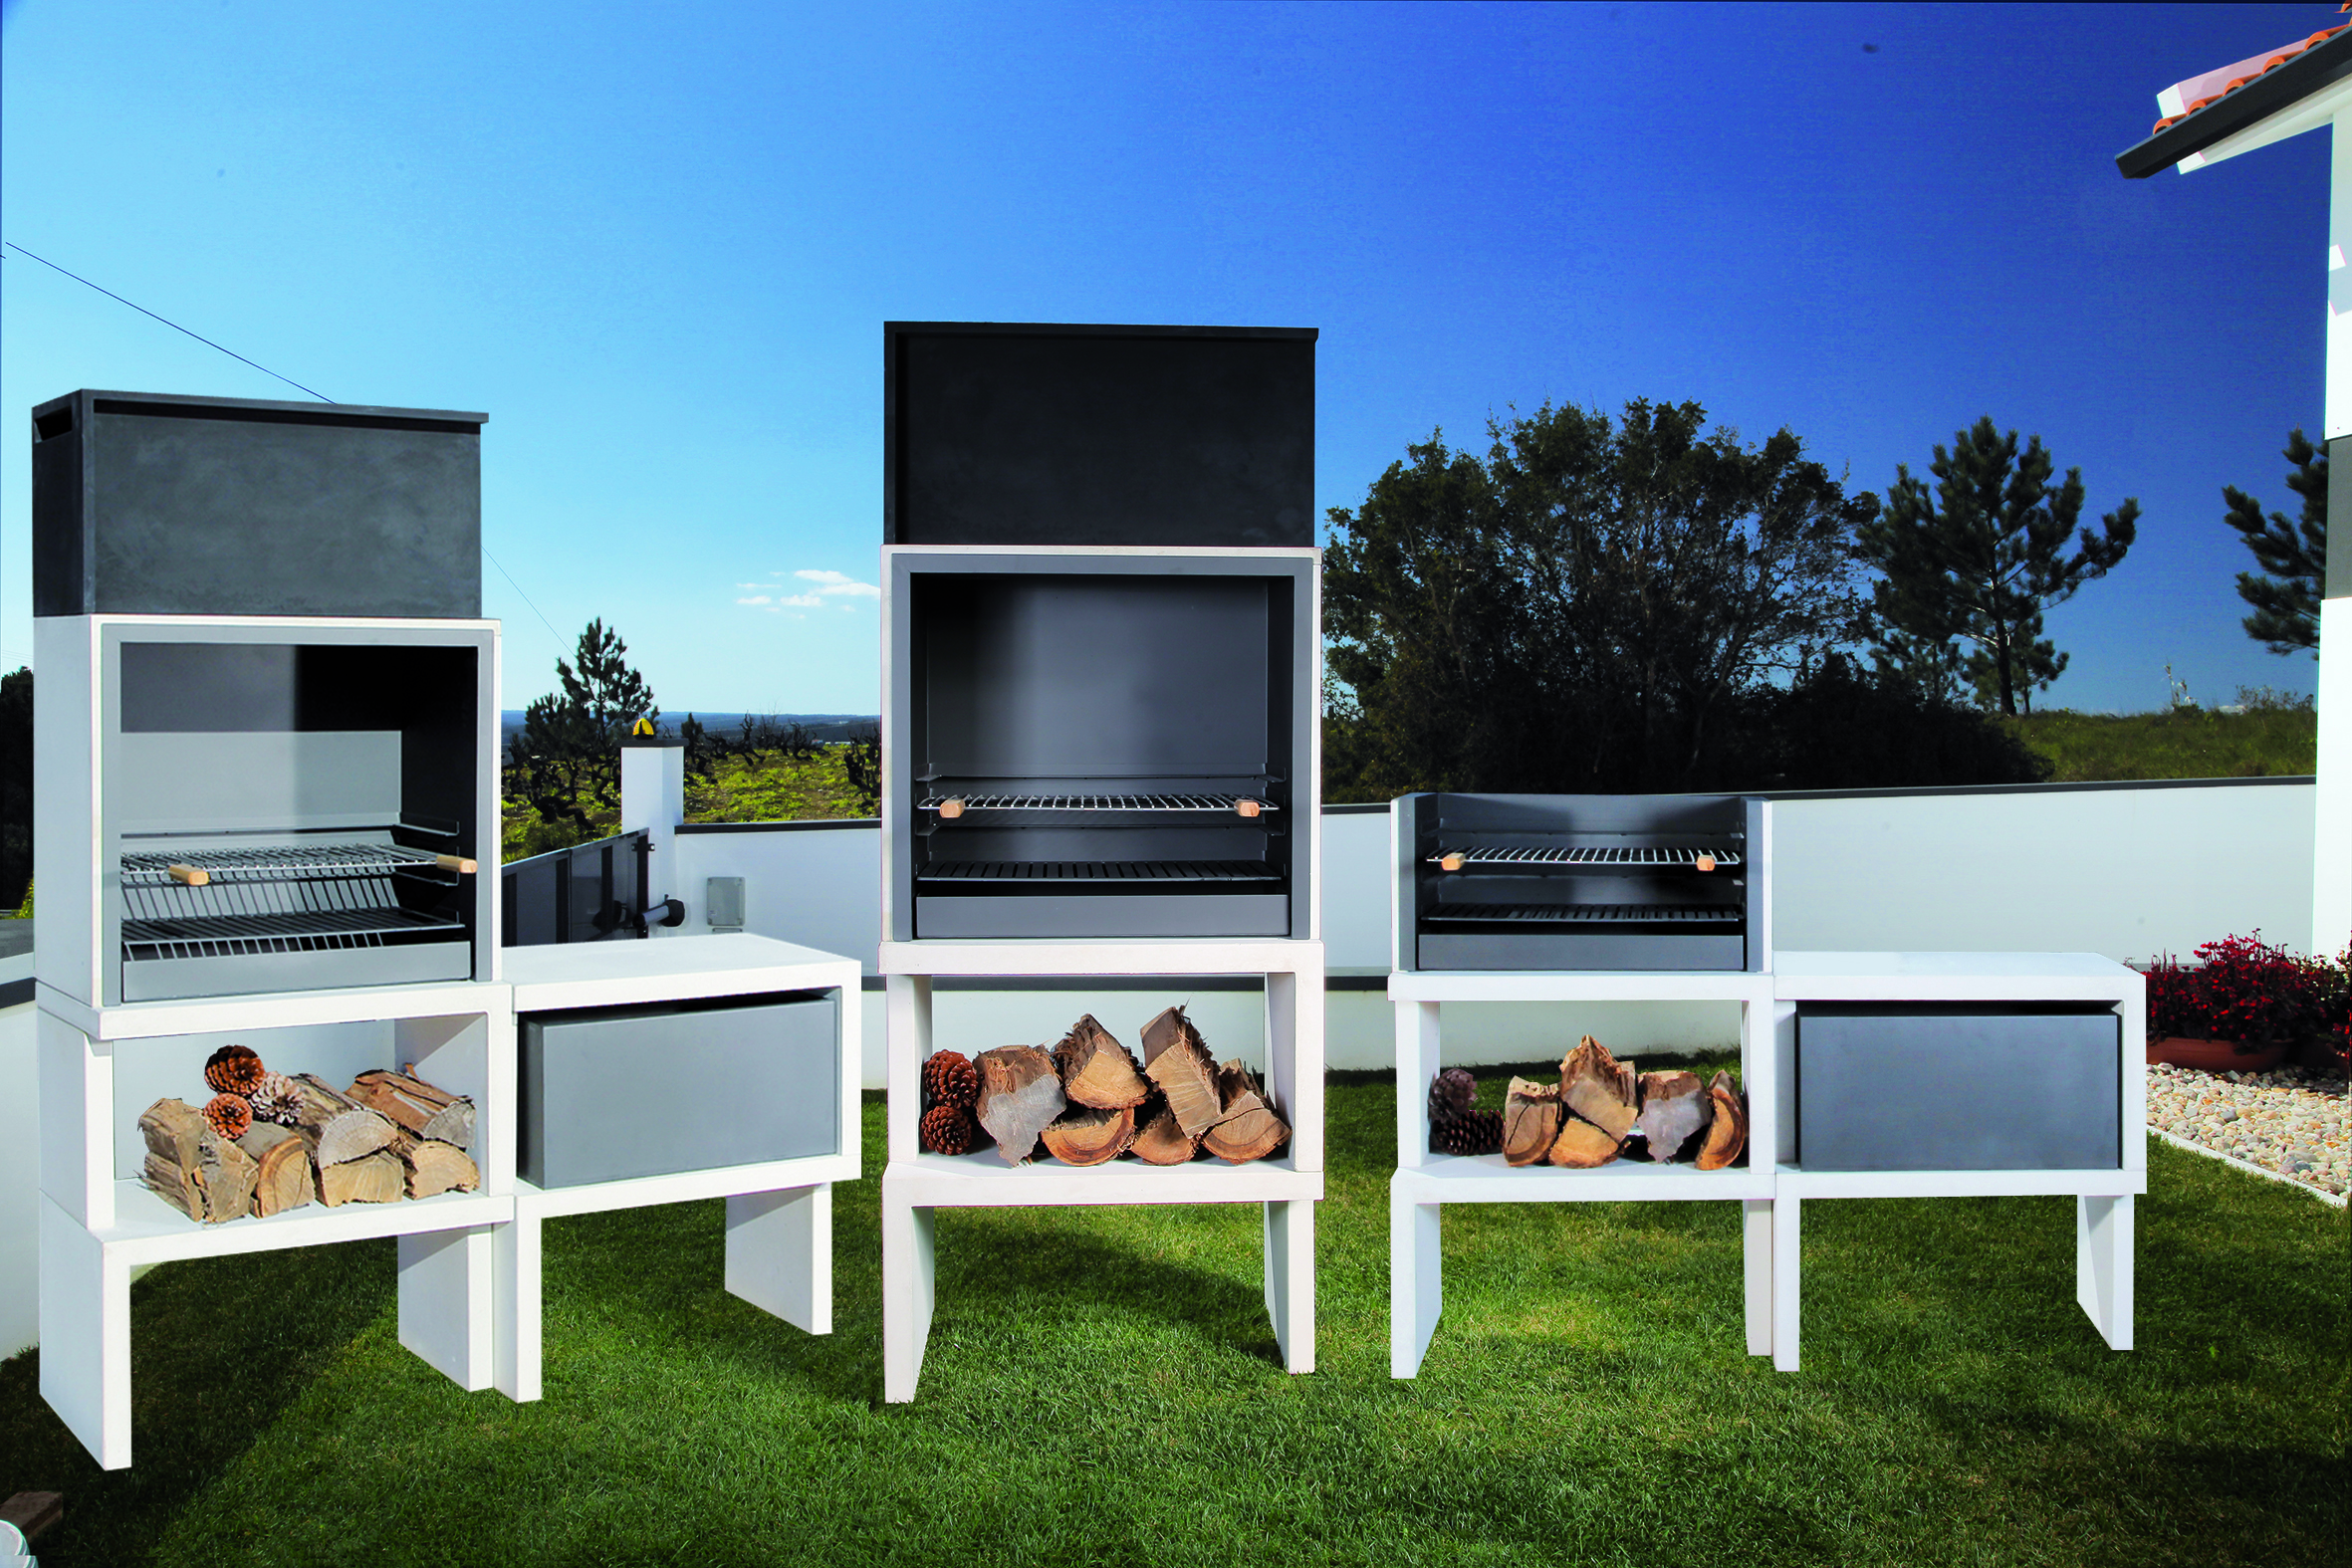 le design futuriste des barbecues blive blog zendart design. Black Bedroom Furniture Sets. Home Design Ideas